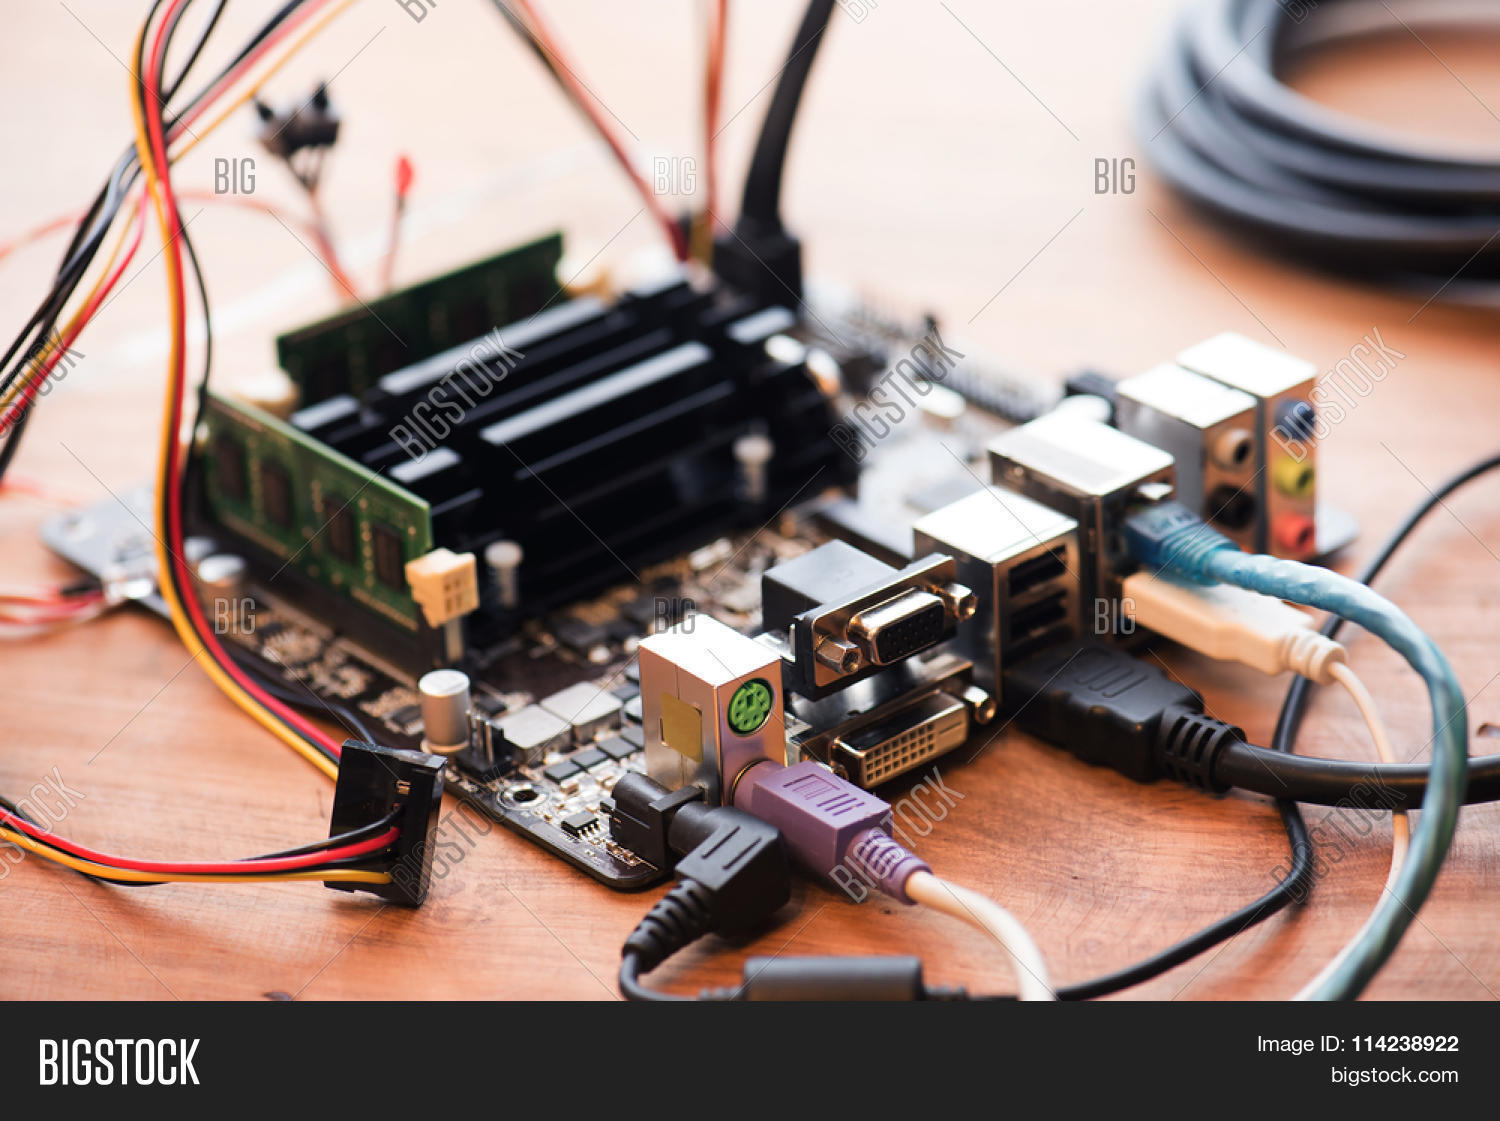 Electronic Project Image Photo Free Trial Bigstock Circuits Electronics Projects Or Testing Bare Computer Mother Board Hooked Up On A Work Table